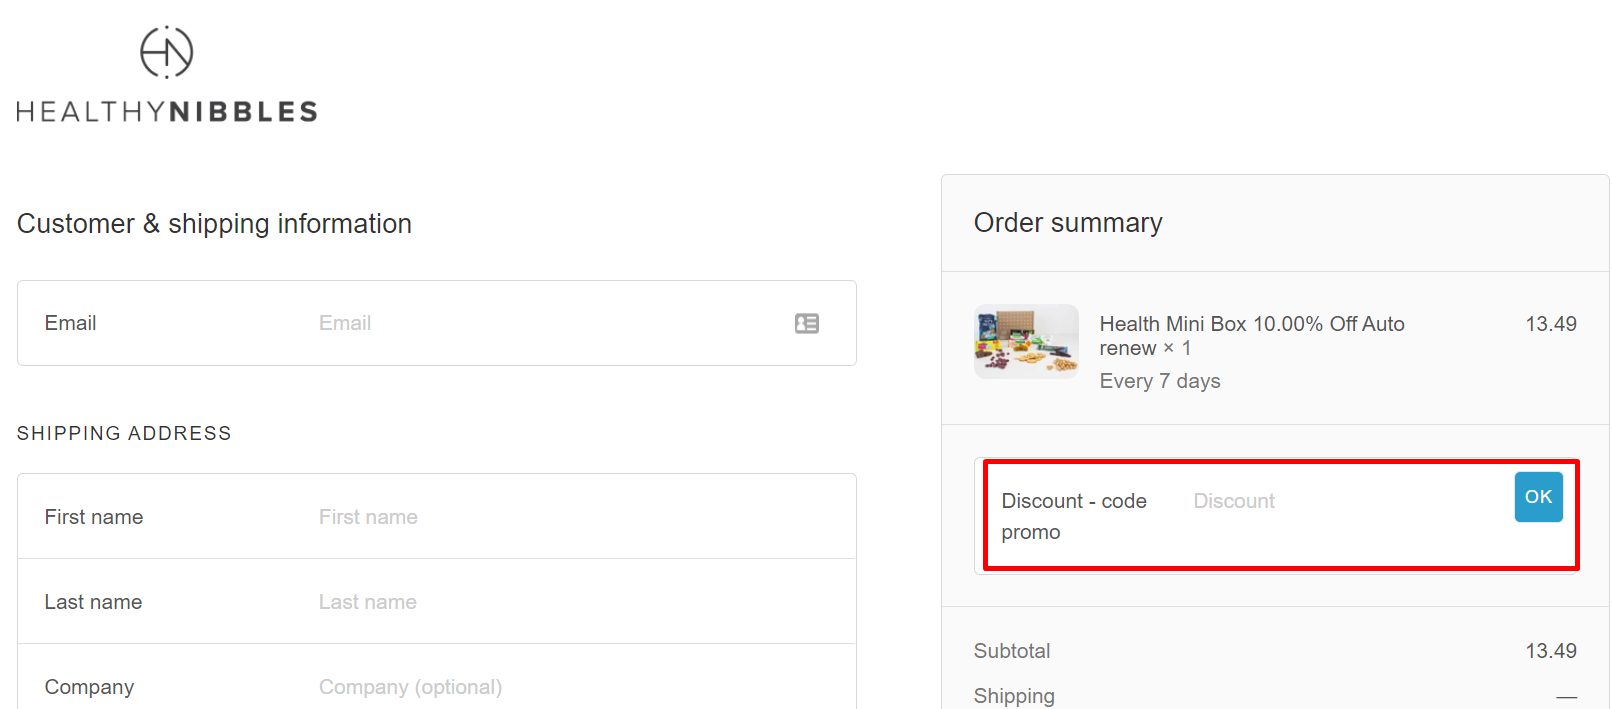 How do I use my Healthy Nibbles discount code?